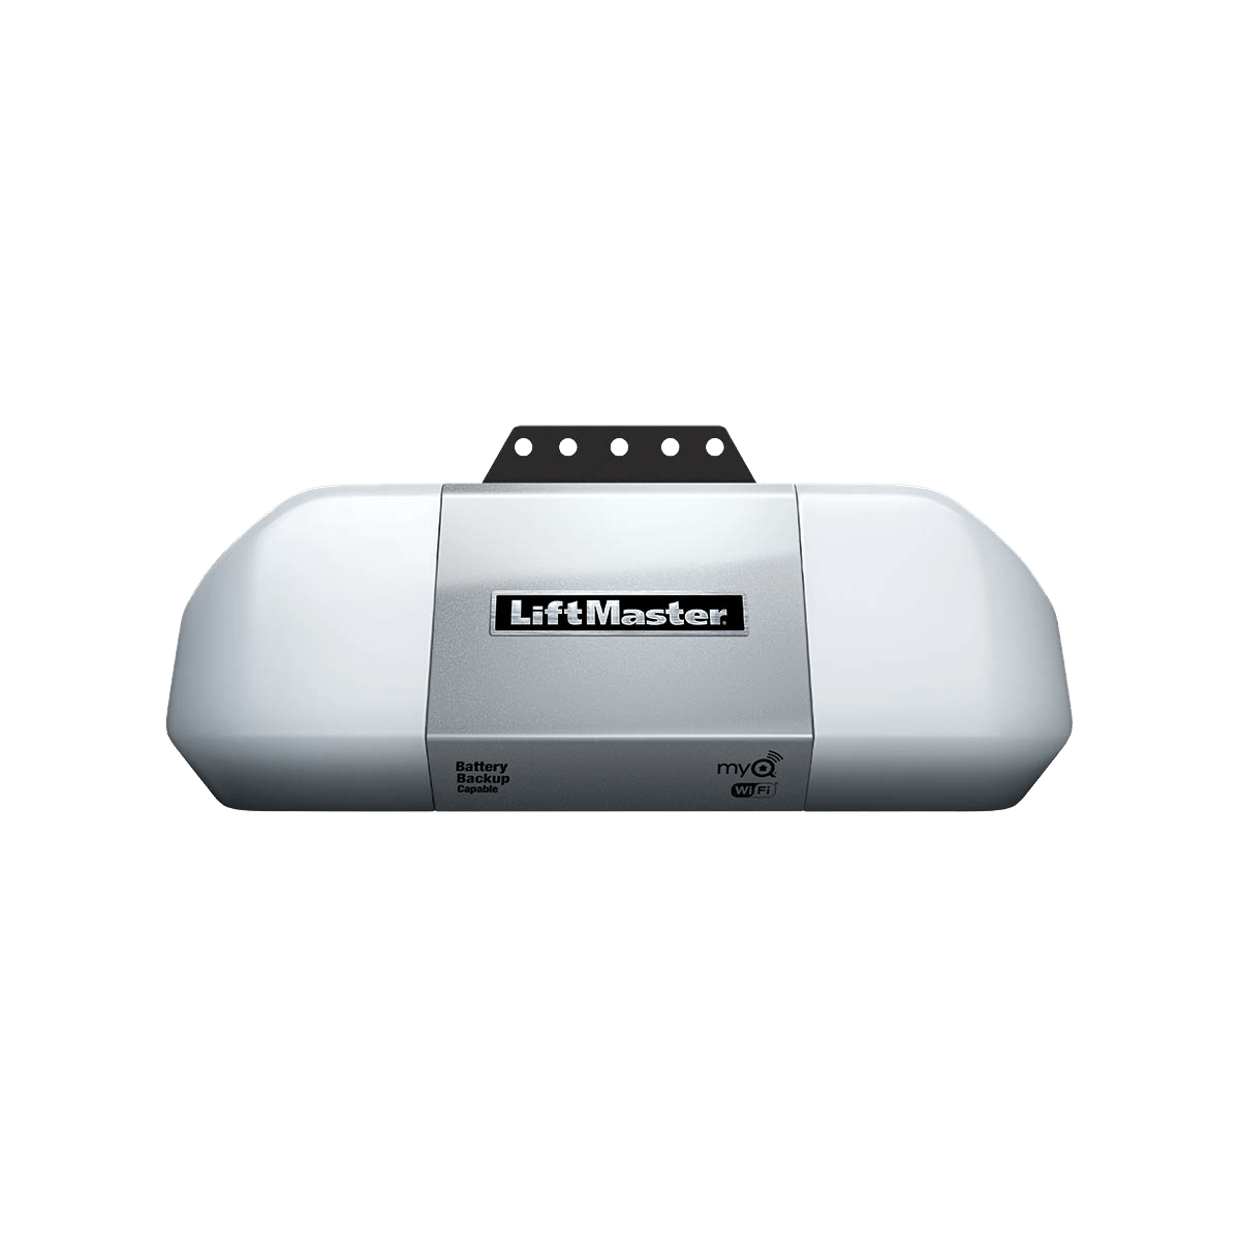 LiftMaster 8360W Residential Garage Door Opener